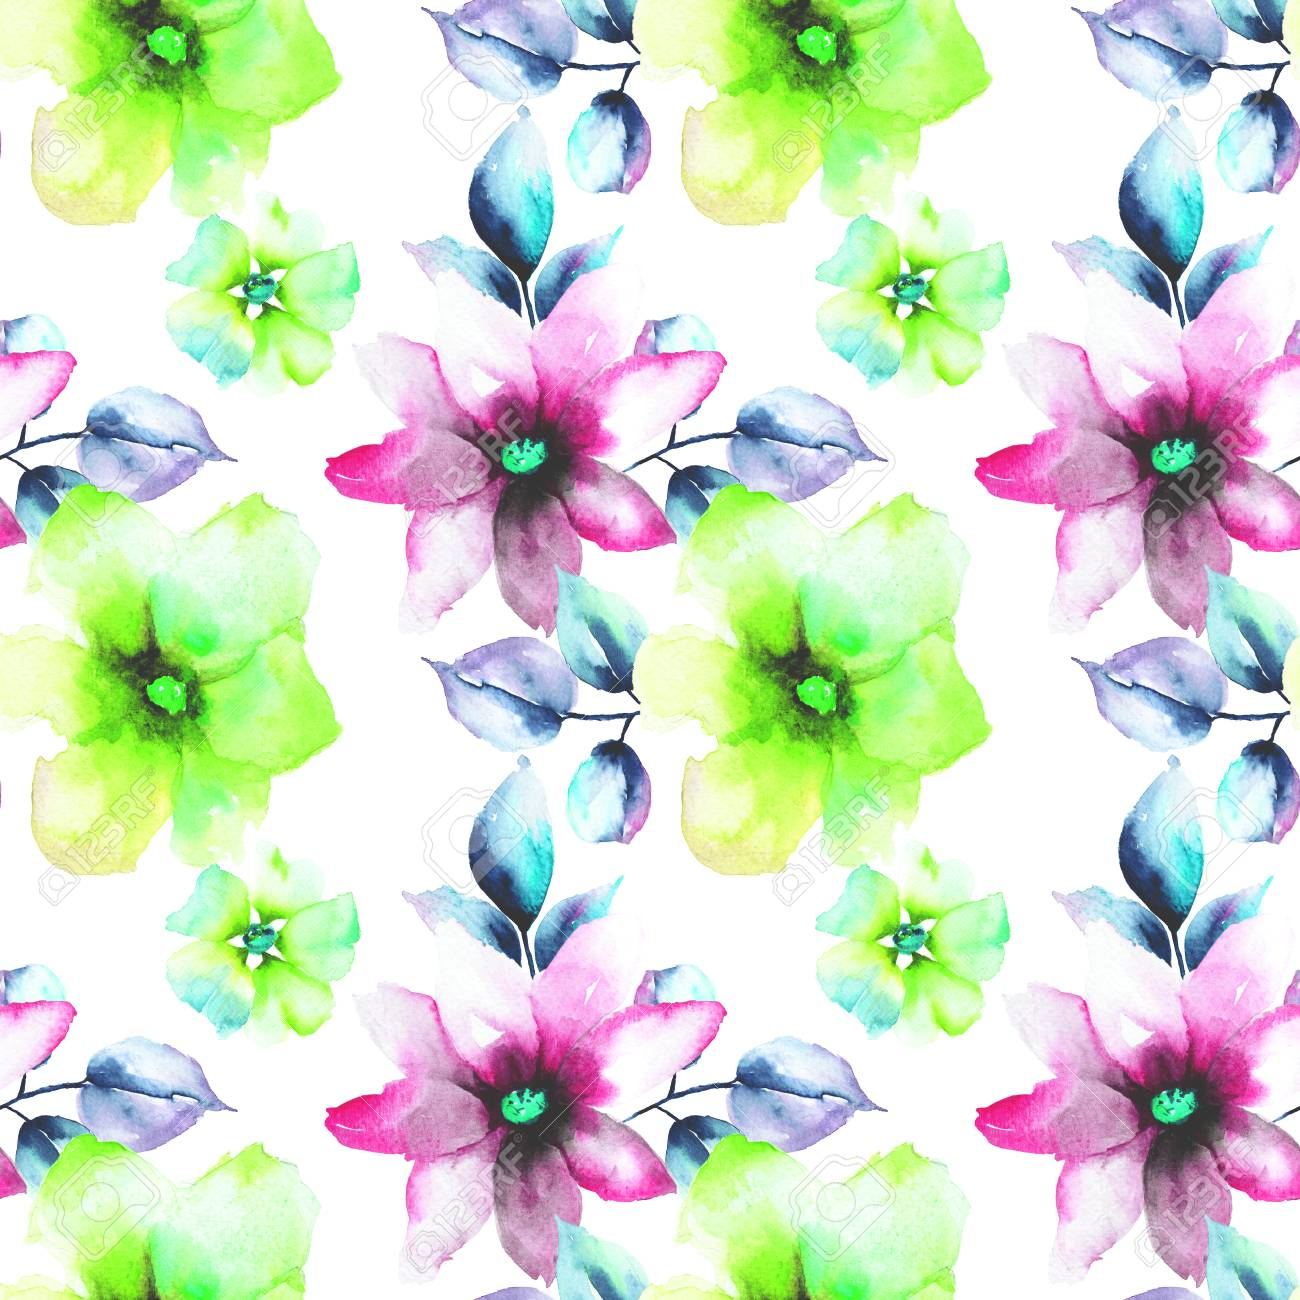 Seamless Wallpaper With Wild Flowers Watercolor Illustration